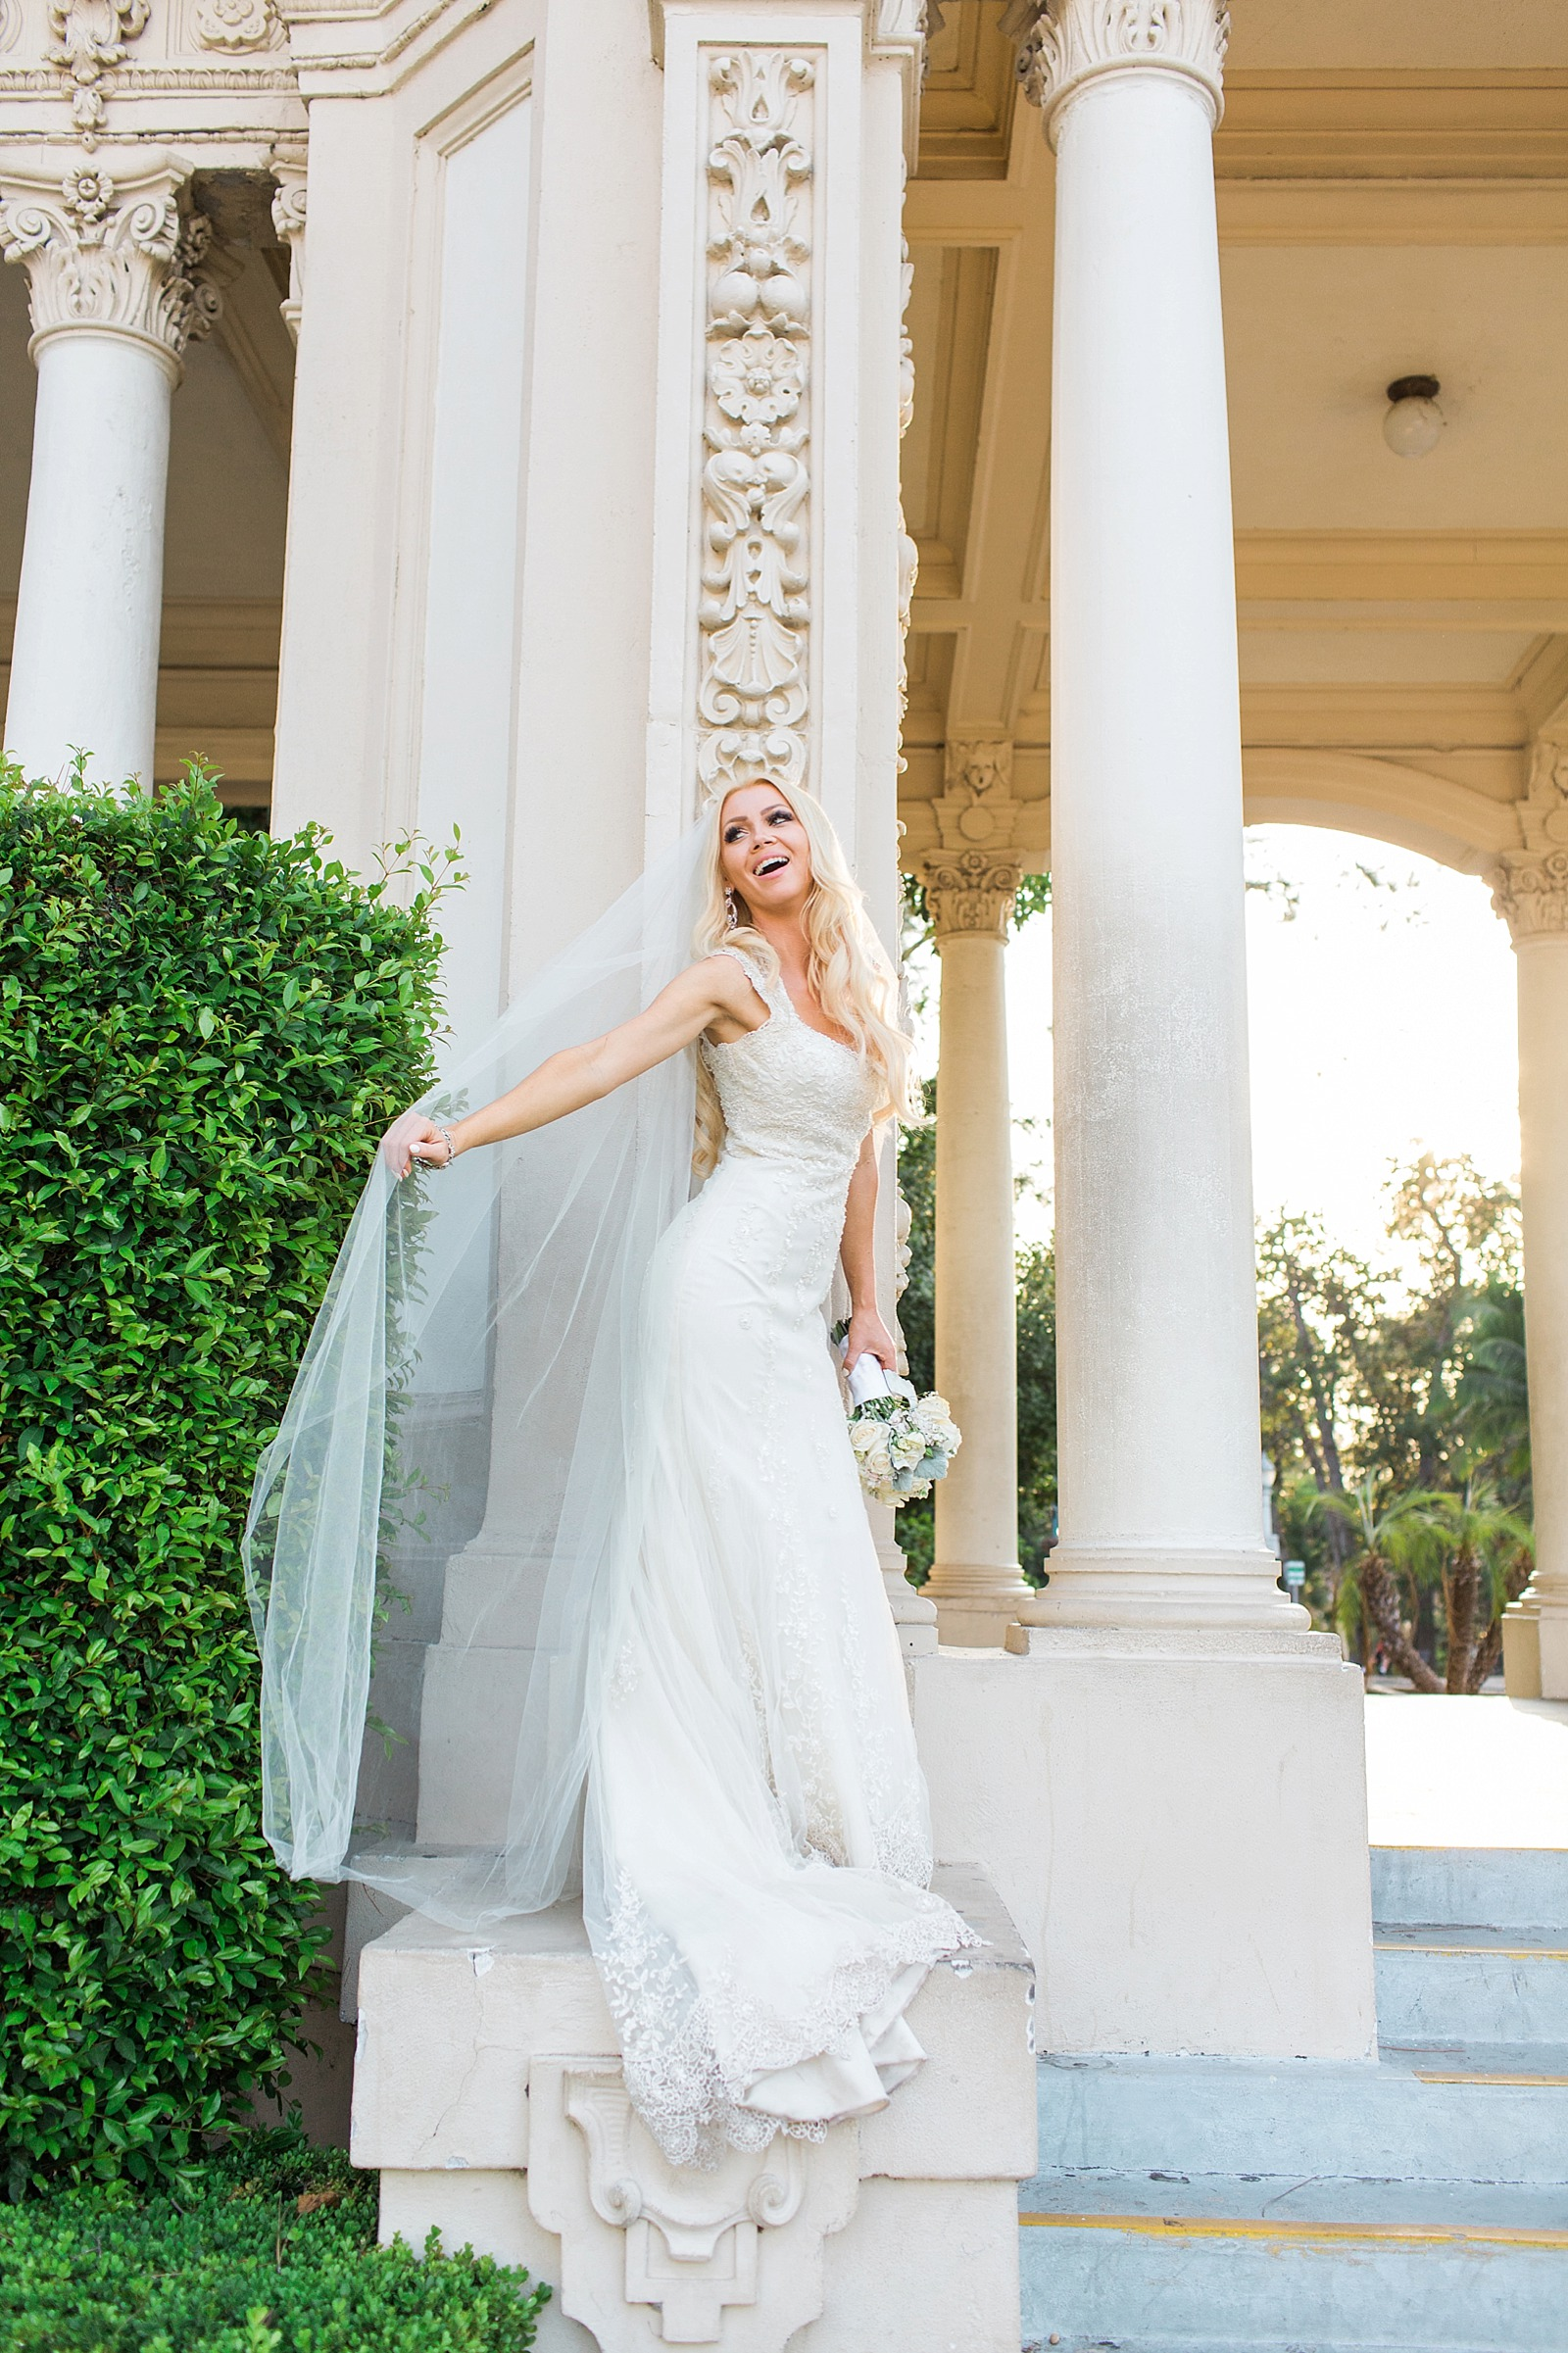 diana-elizabeth-photography-balboa-park-wedding-portraits-photography_0211